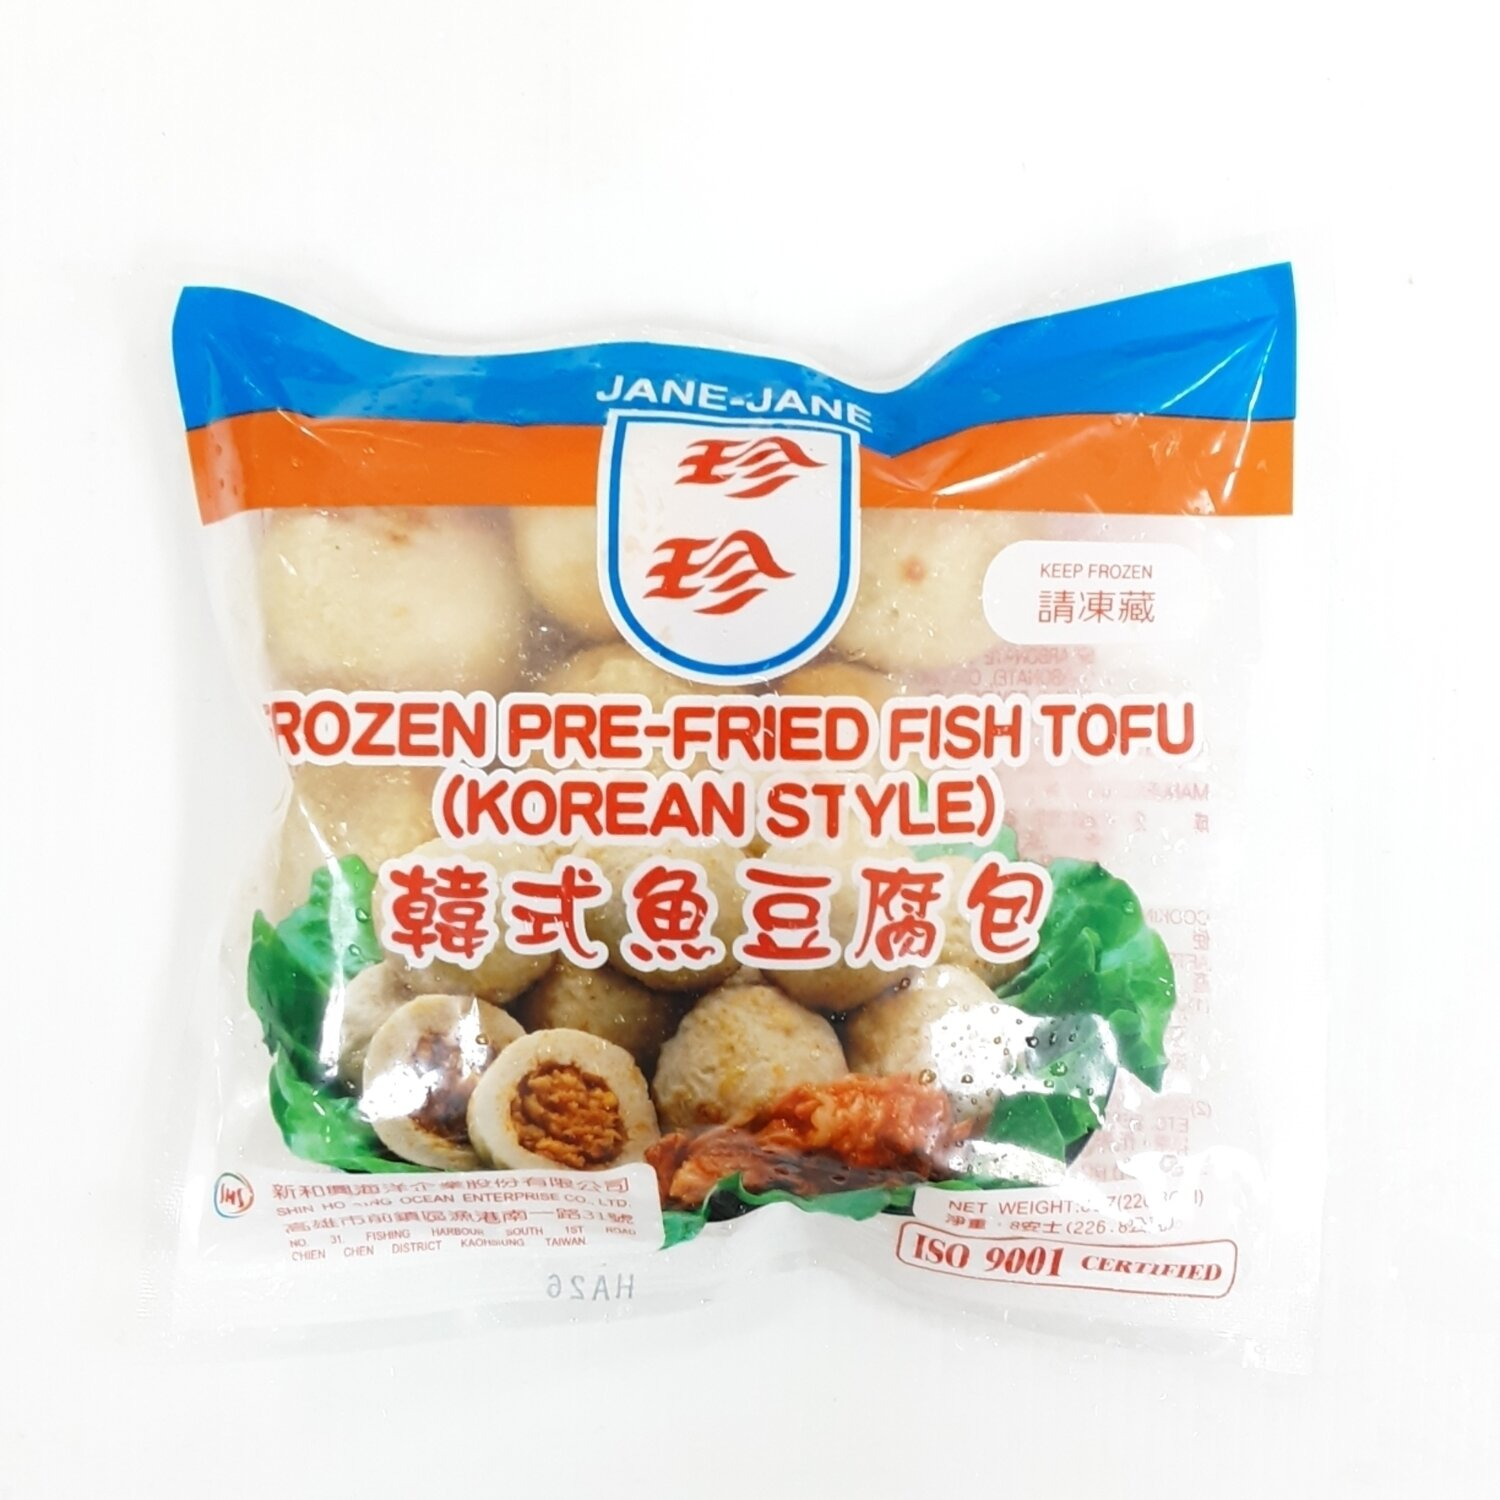 珍珍 韩式鱼豆腐包 ~226.8g(8oz) JANE-JANE FROZEN PRE-FRIED FISH TOFU (KOREAN STYLE) 226.8g(8oz)